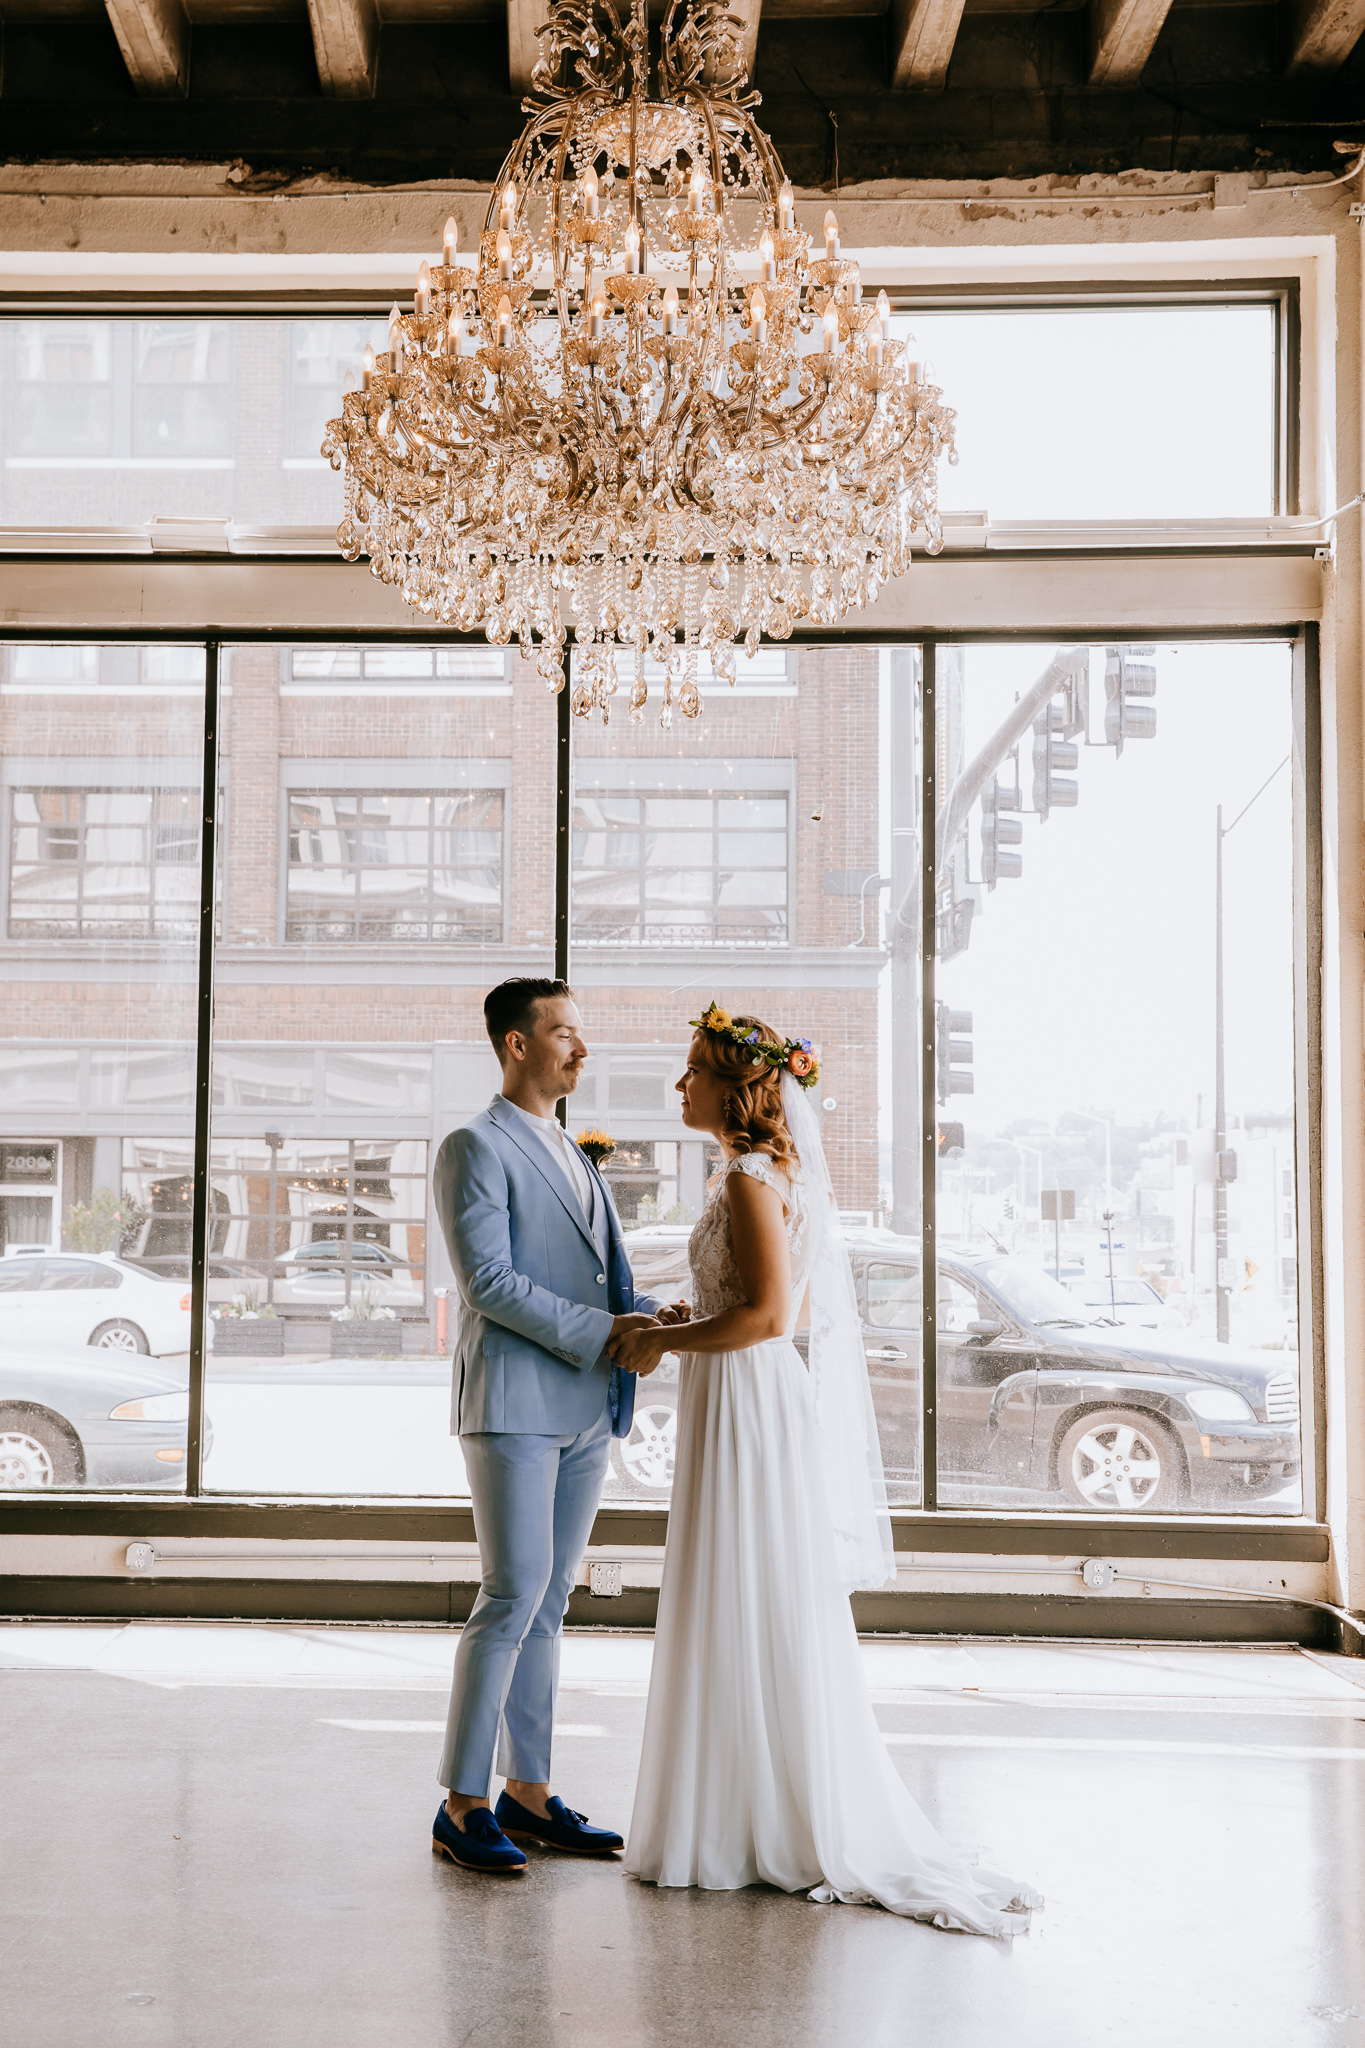 Kansas City Wedding Photography at the Historic Firestone Building by Merry Ohler